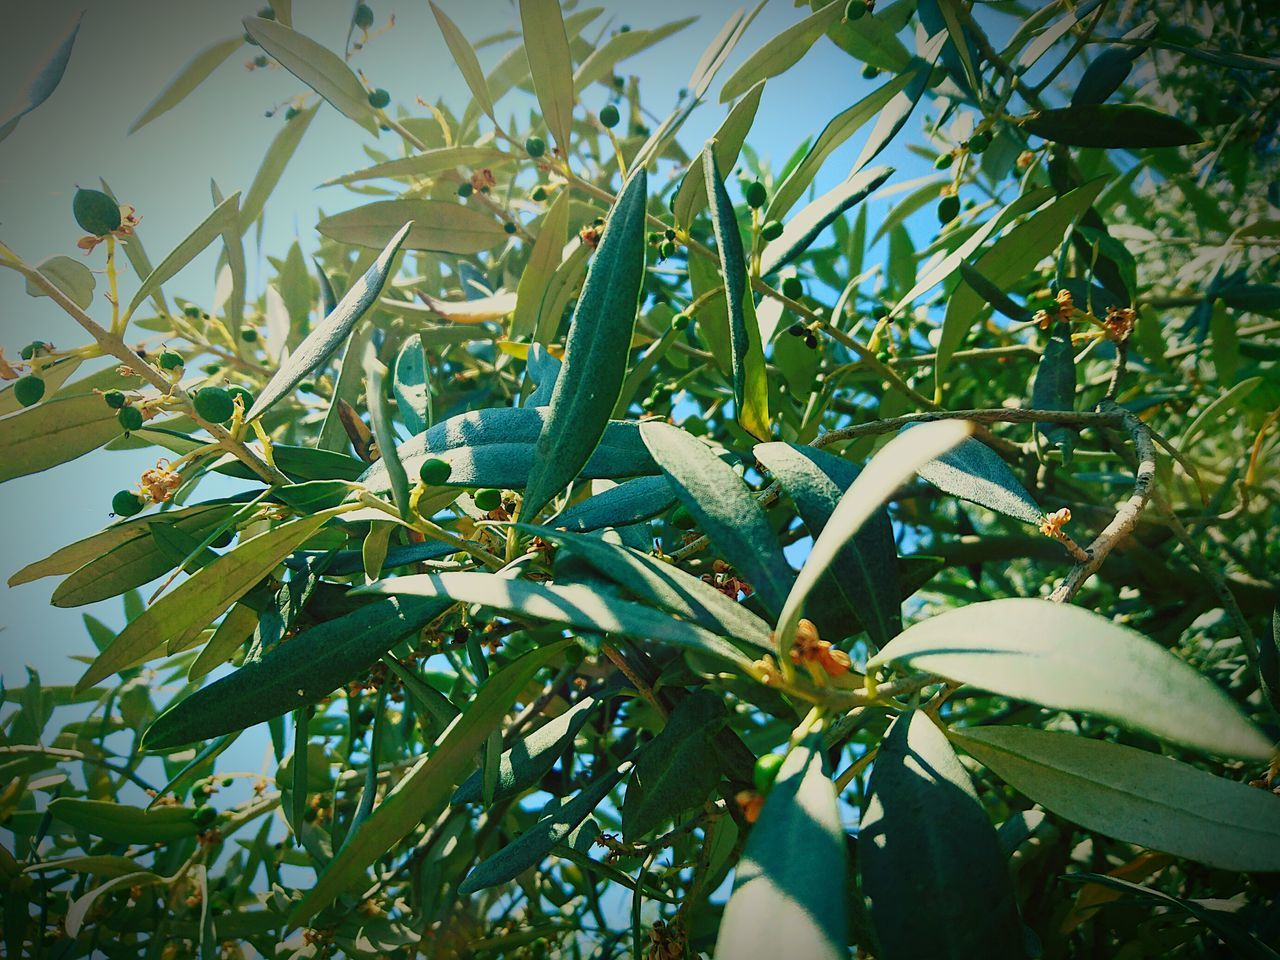 Taking Photos Check This Out Hello World Natures Diversities Natural Beauty Naturelovers Nature Nature_collection EyeEm Nature Lover Nature Photography EyeEm Gallery EyeEm Best Shots - Nature Eyeemphotography Naturesdiversities EyeEm Best Shots The Great Outdoors - 2016 EyeEm Awards Olive Tree Olive Buds Mediterranean Food Mediterranean  Mediterrian Mediterrianfood Mediterranean Landscape Mediterranean Nature Mediterranean Plants